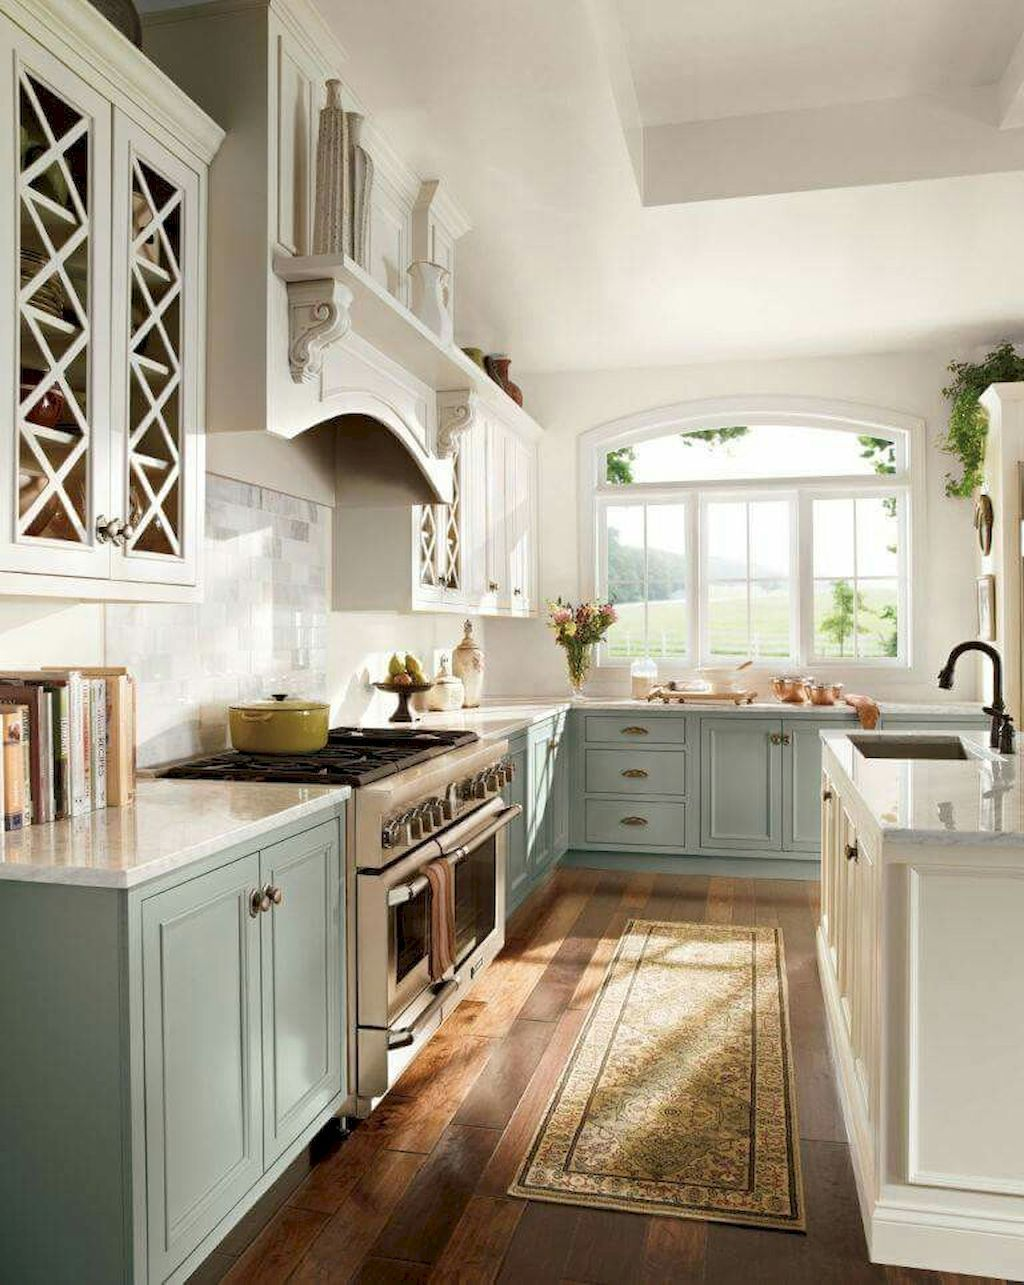 New home kitchen ideas english country kitchens kitchen country